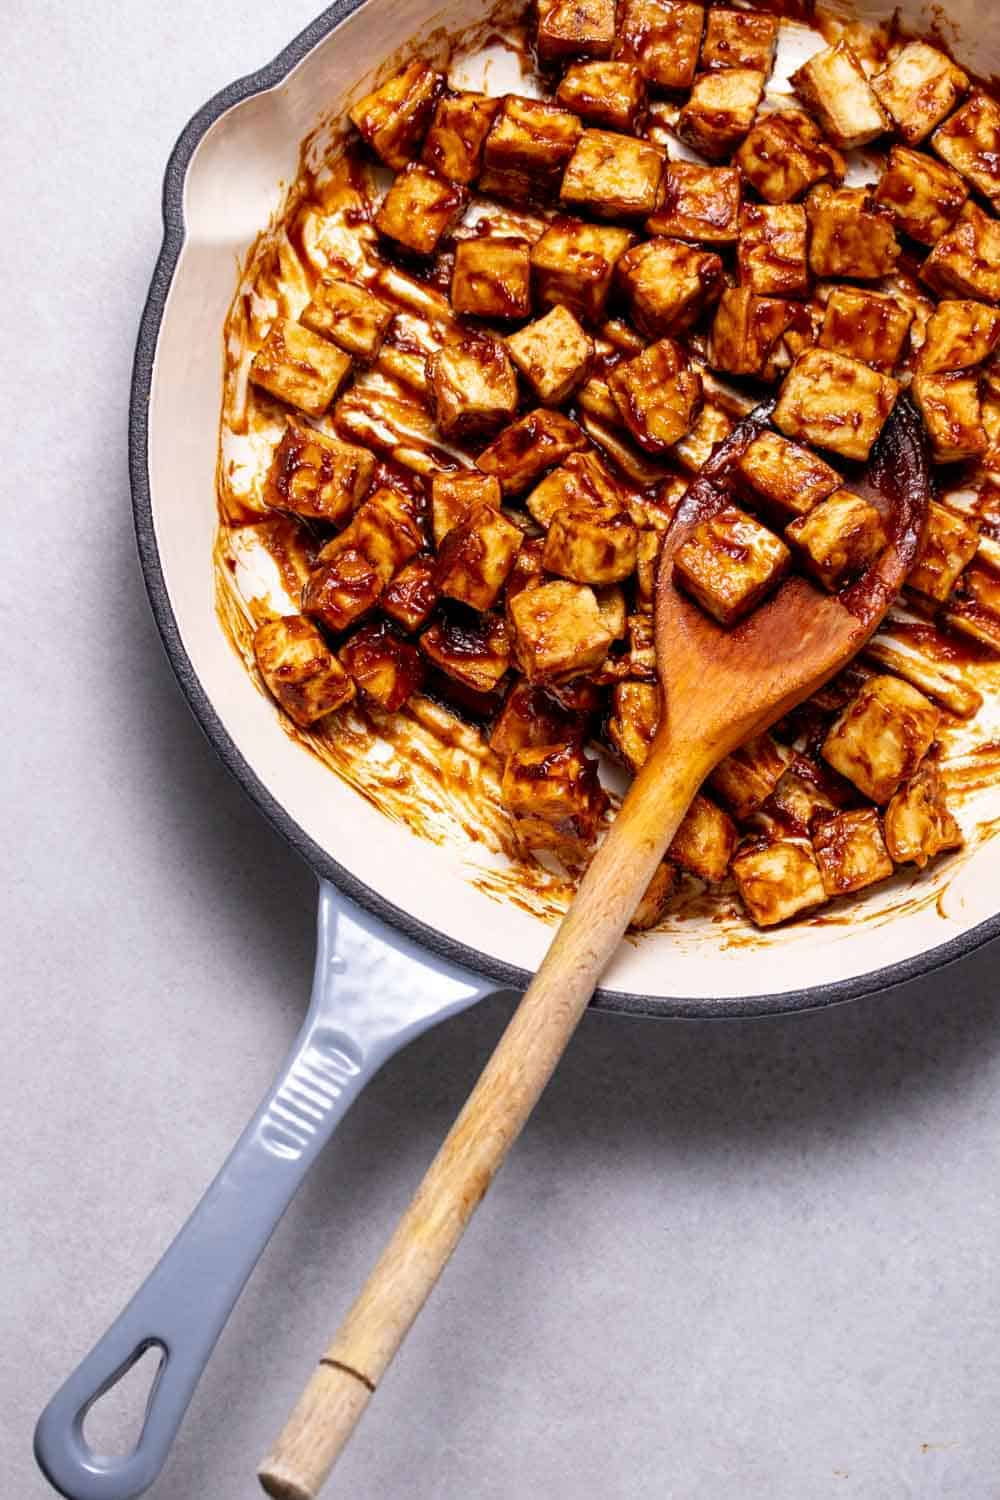 Hoisin glazed tofu in a cast iron pan